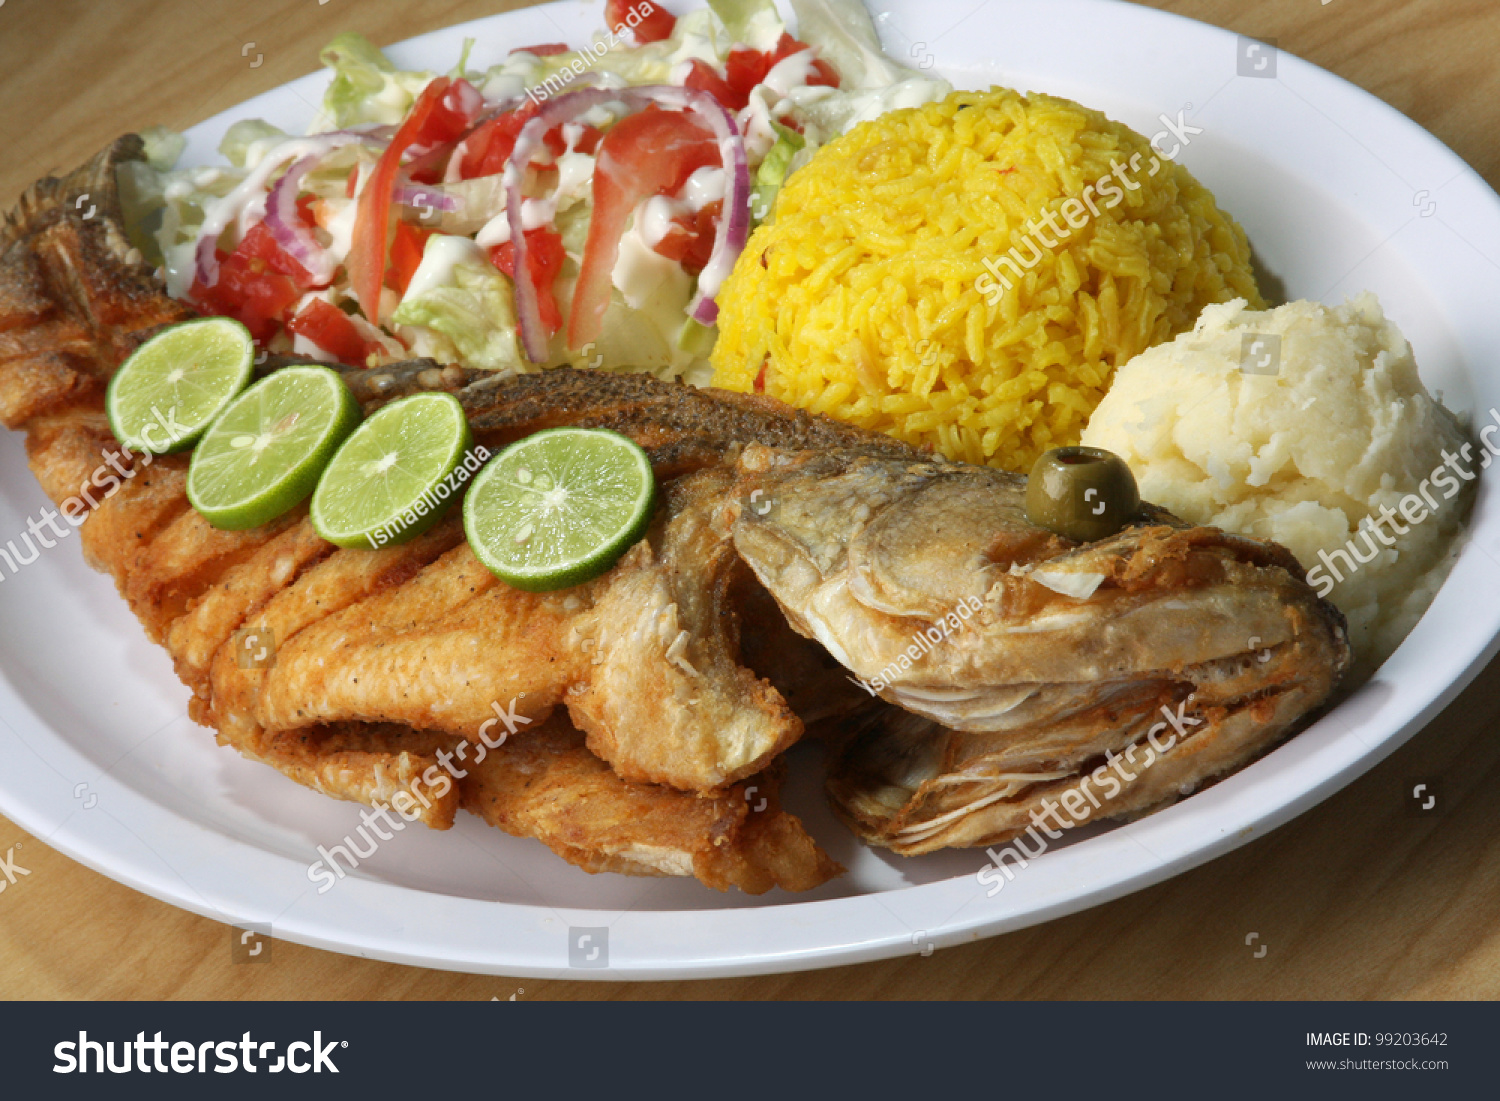 Fried Fish Fried Fish Served Side Stock Photo 99203642